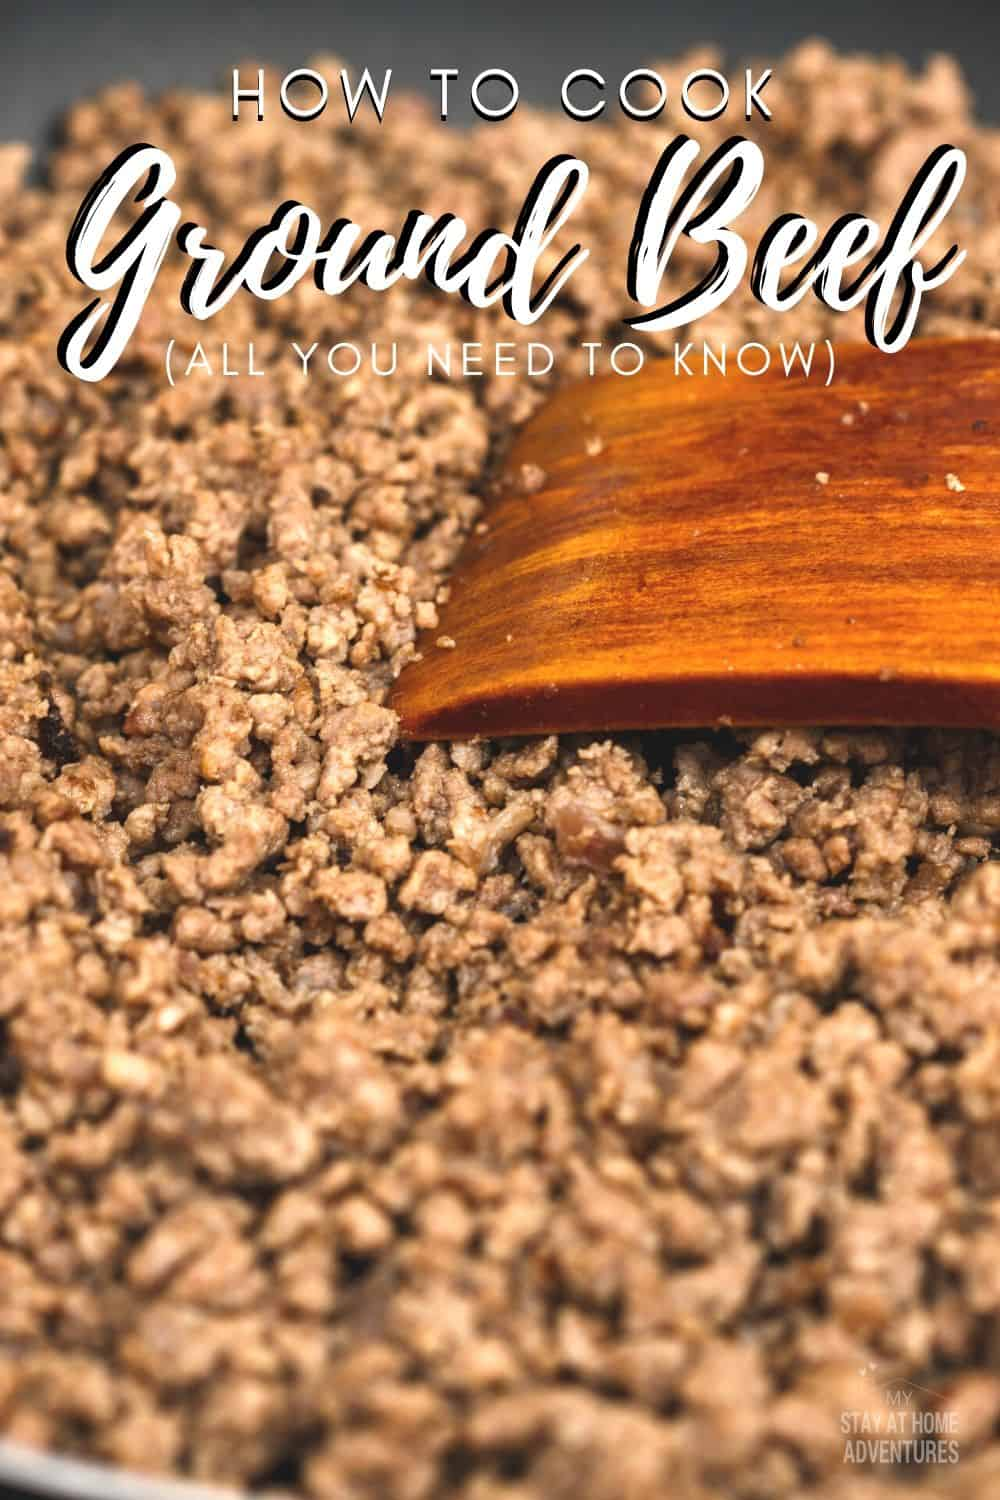 Learn not just how to properly cook ground beef from what are the types of ground beef, what utensils are best to use, and the proper way to cook it. via @mystayathome